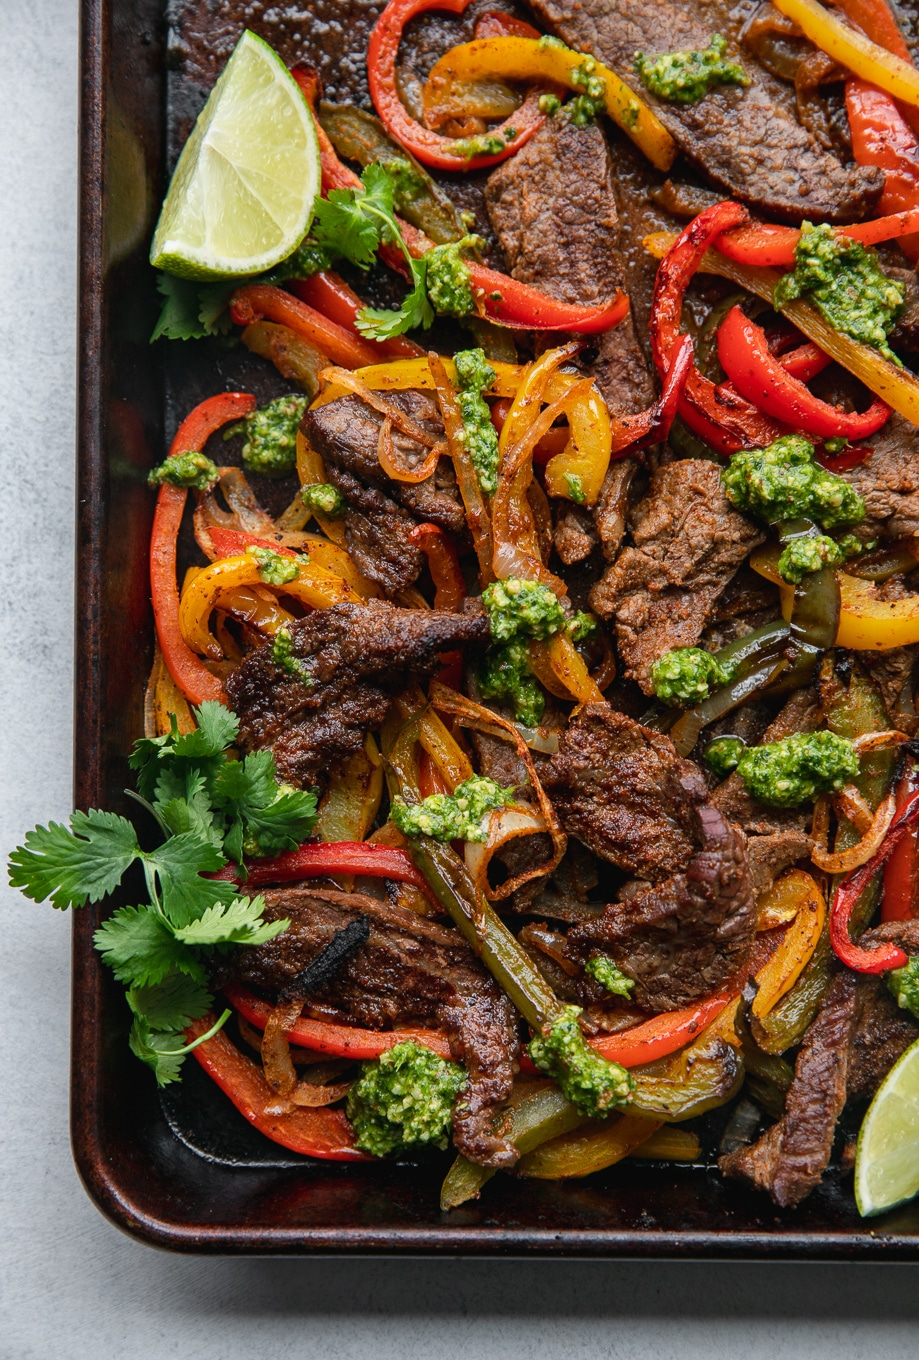 Overhead shot of a sheet pan filled with steak fajitas, peppers, and onions drizzled with cilantro pesto